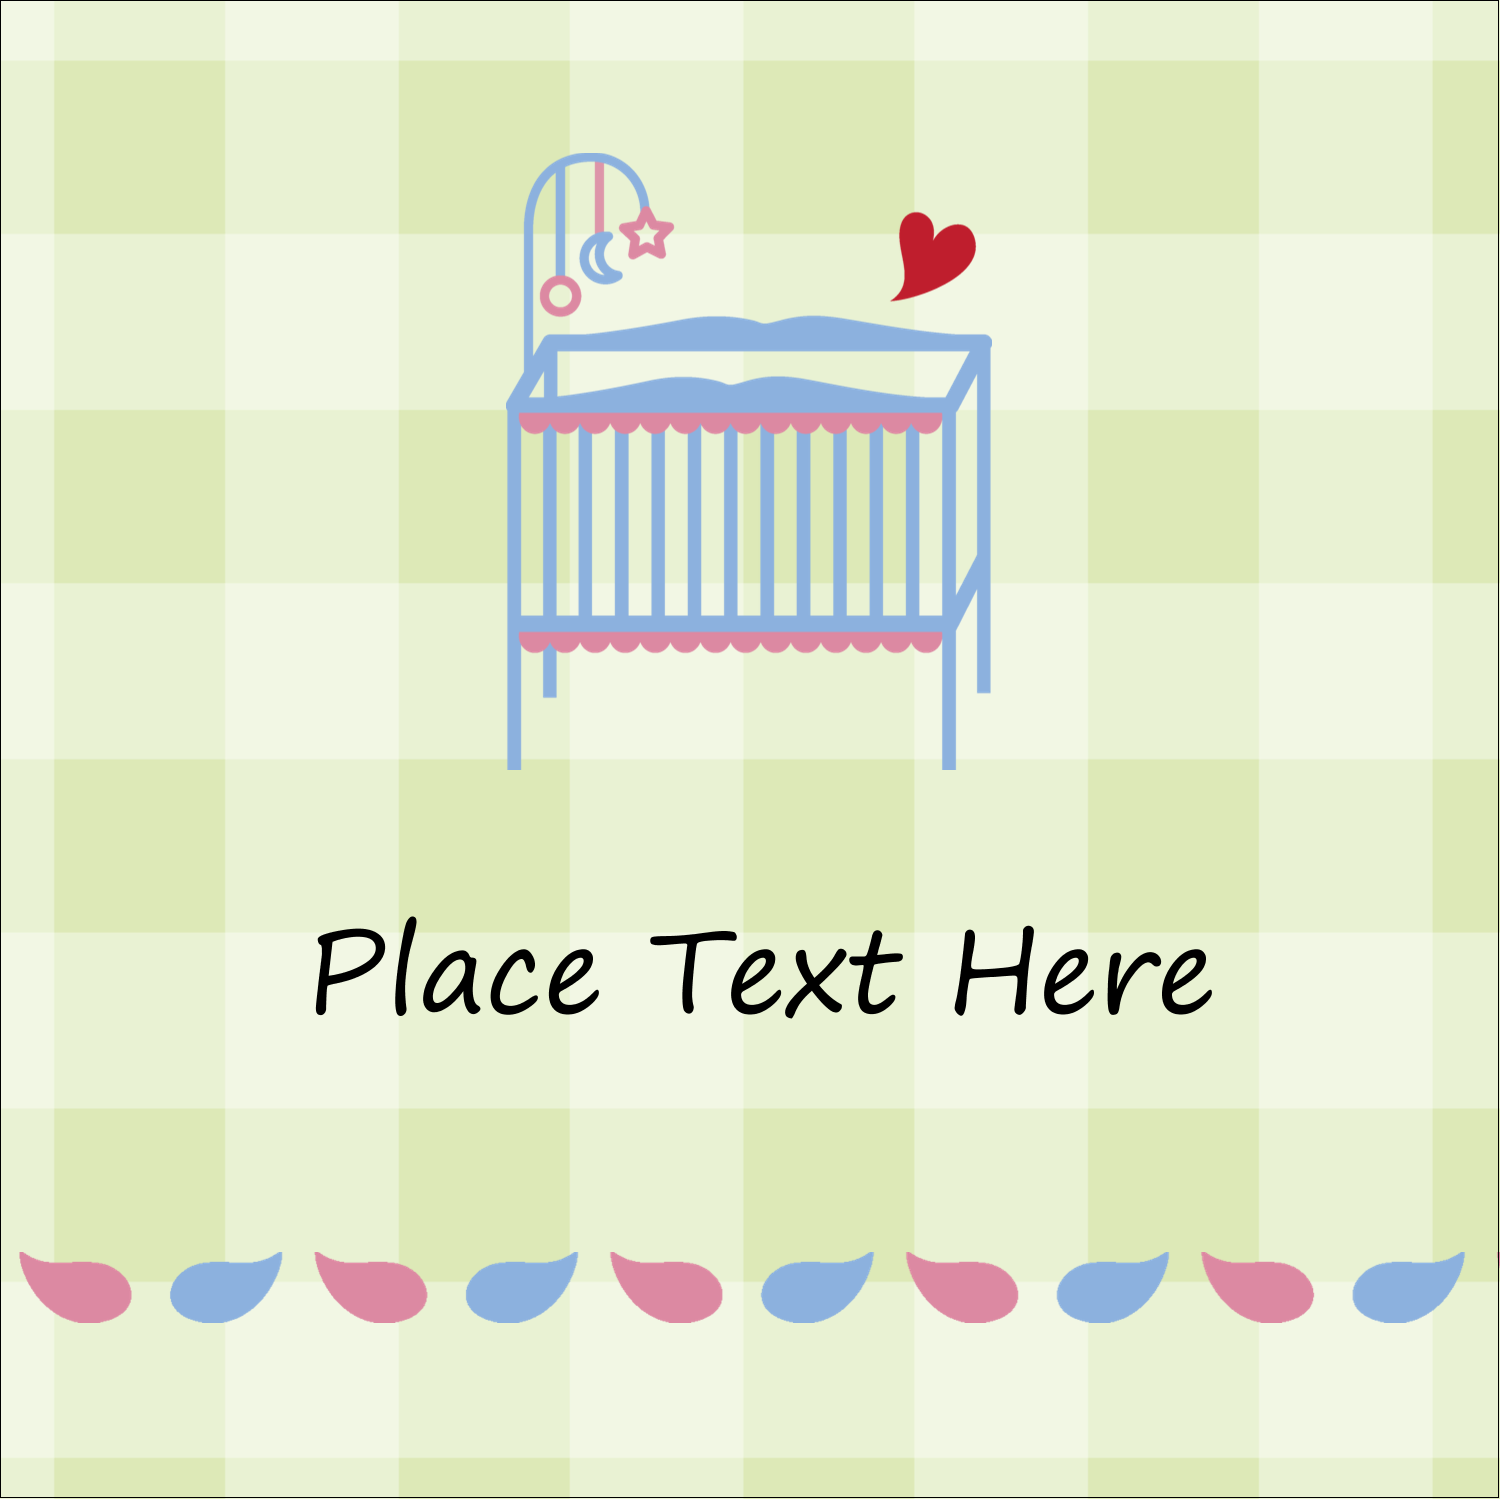 "2"" x 2"" Square Label - Baby Crib"